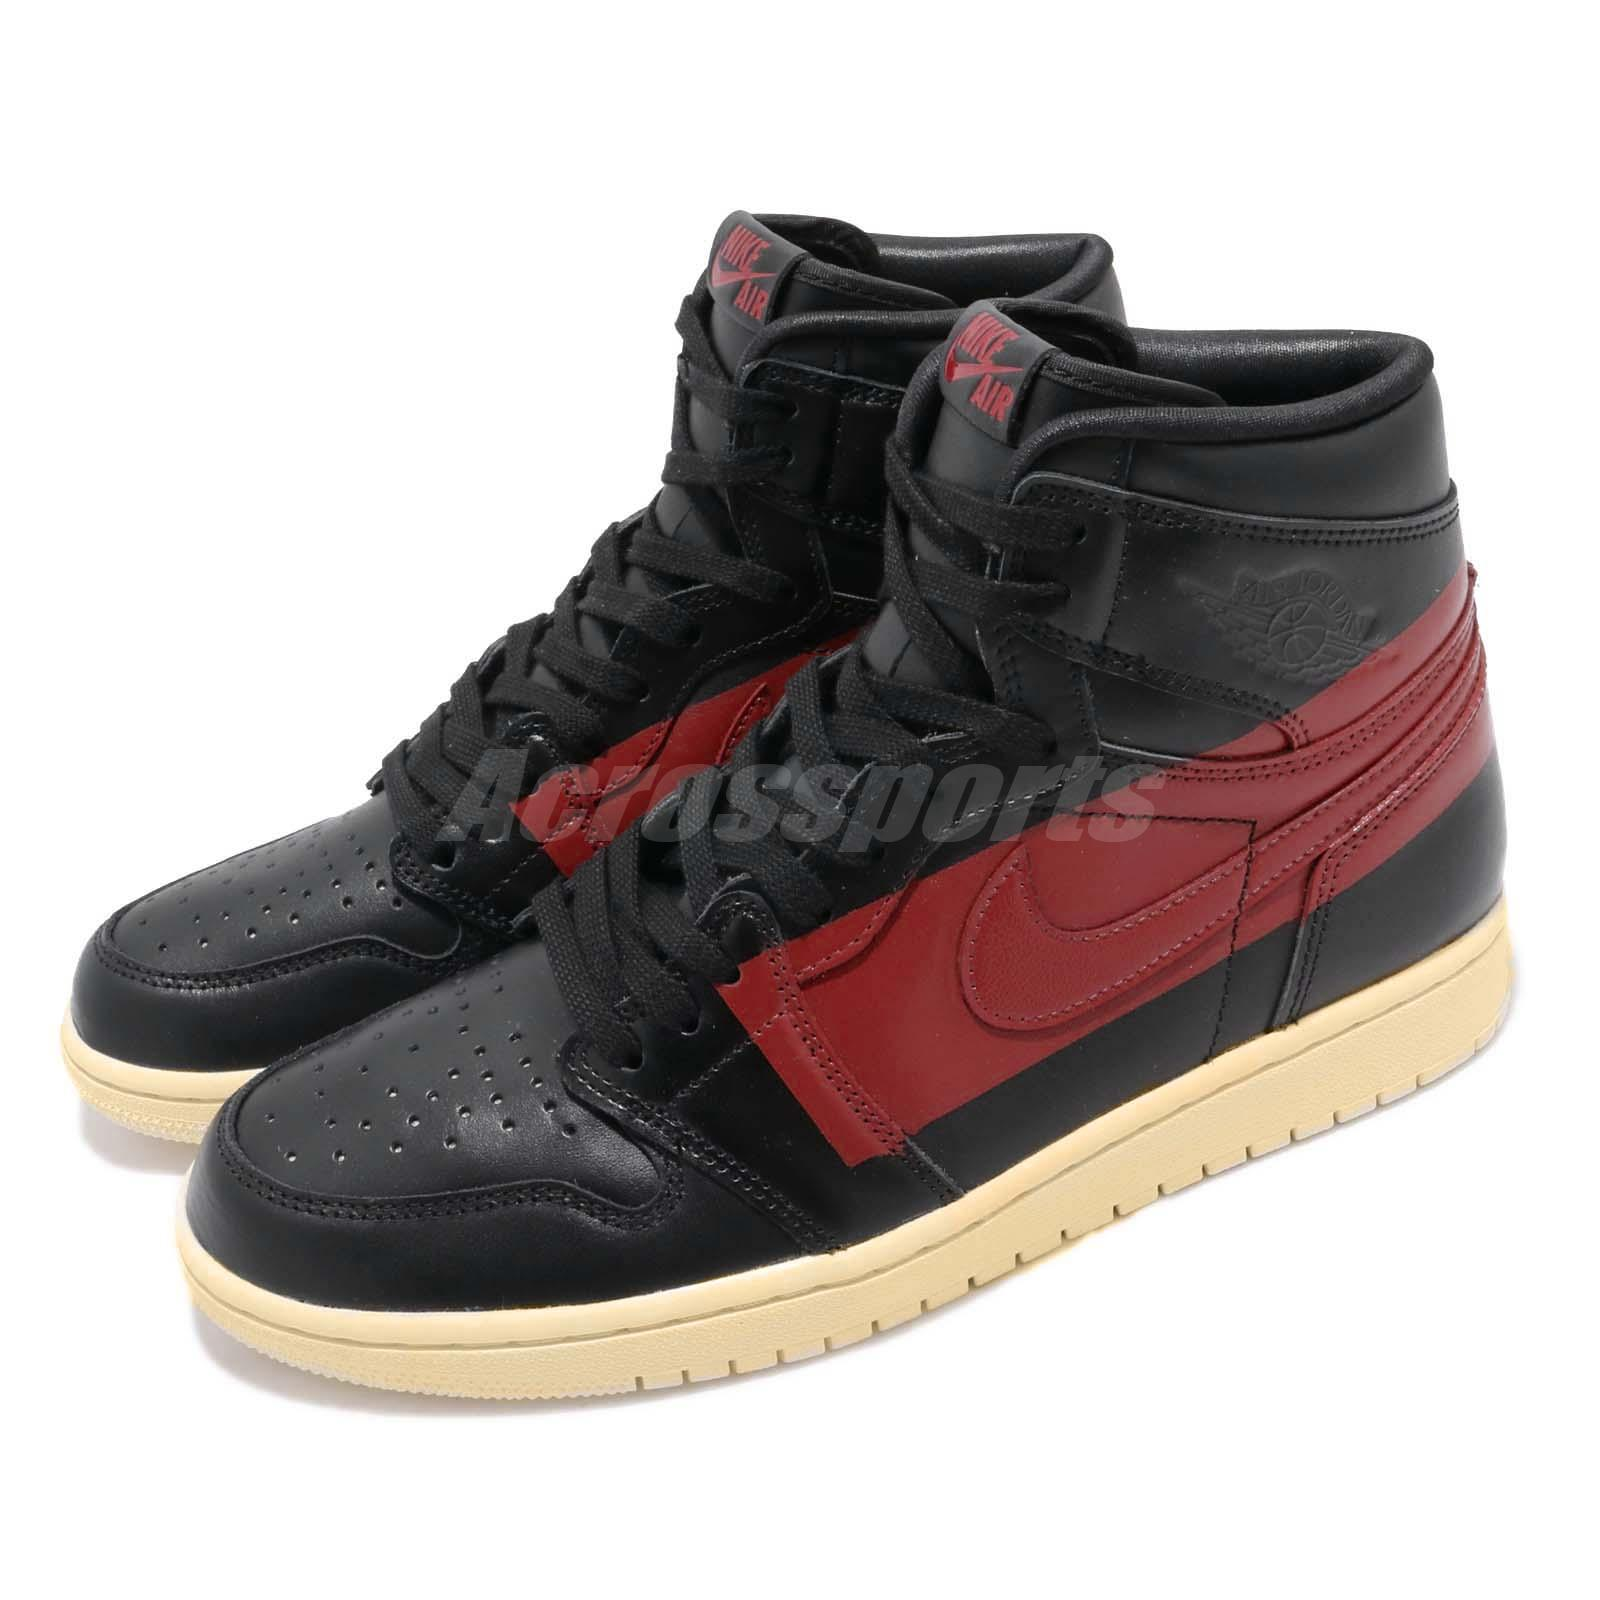 493fb7008fd Details about Nike Air Jordan 1 Retro High OG Defiant Couture Black Red Bred  Banned BQ6682-006